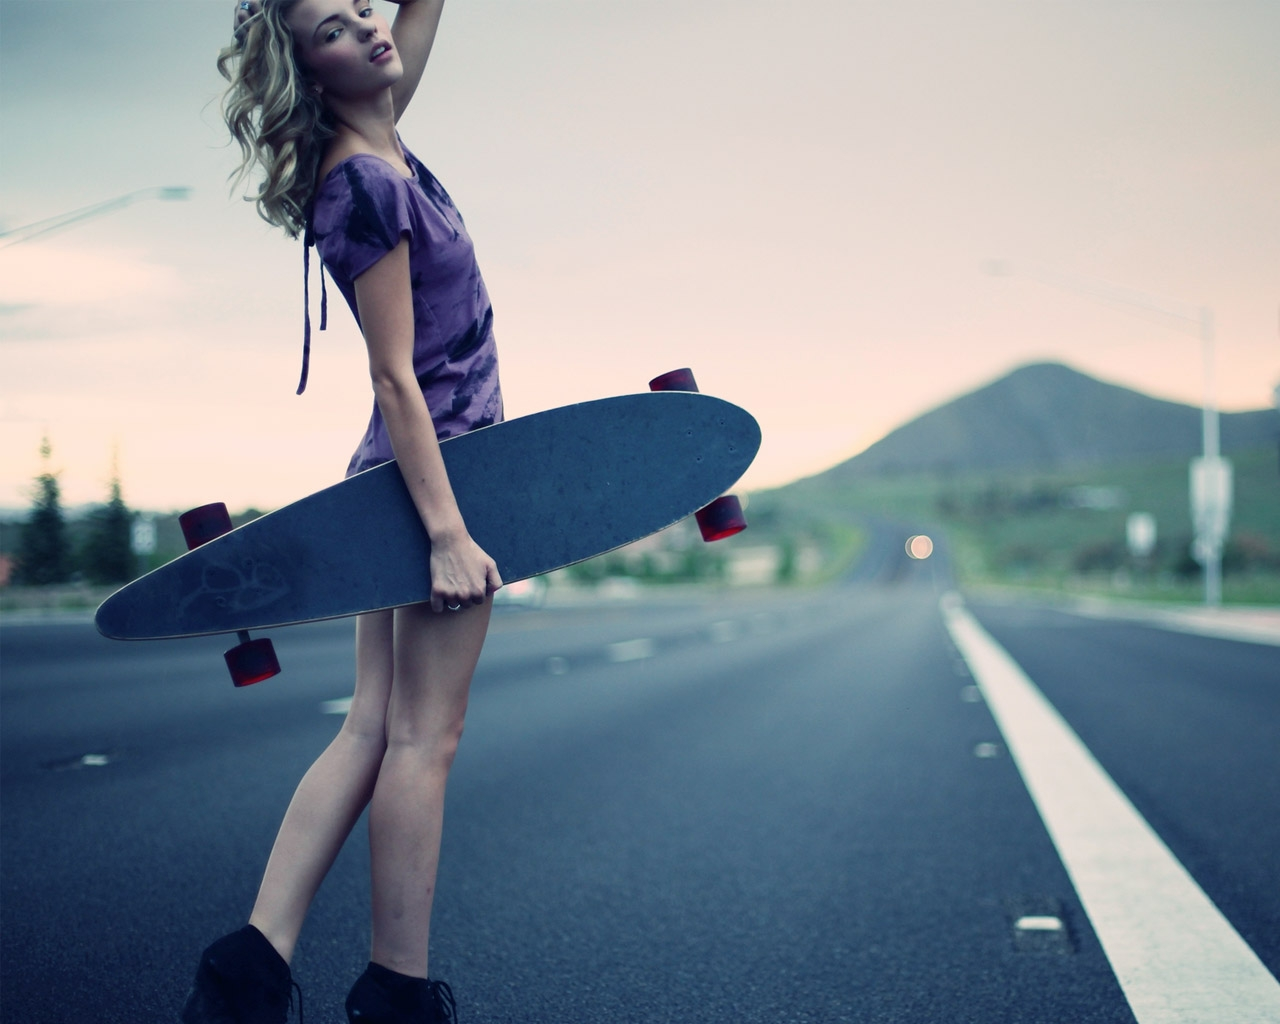 Longboard · Longboard · Longboard Wallpaper · Longboard Wallpaper · Longboard Wallpaper ...